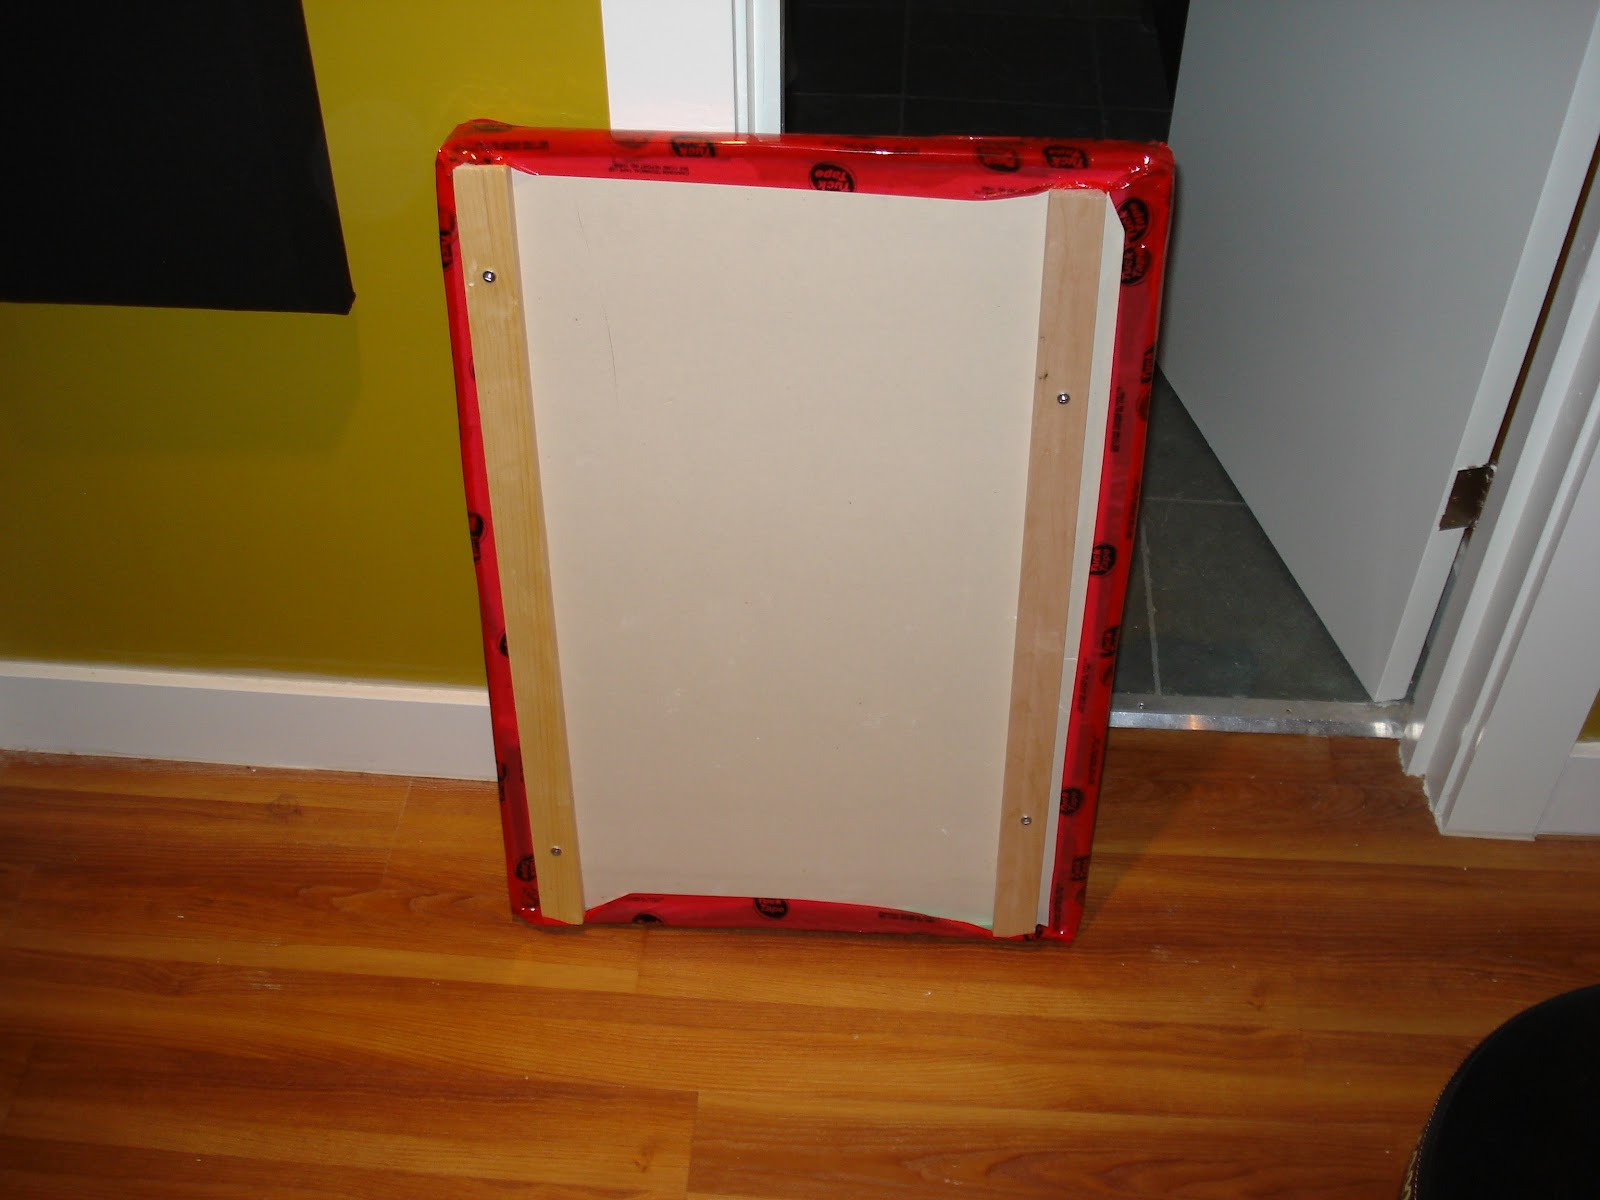 Diy Soundproof Room Divider Morph Productions Soundproofing Windows With Homemade Plugs